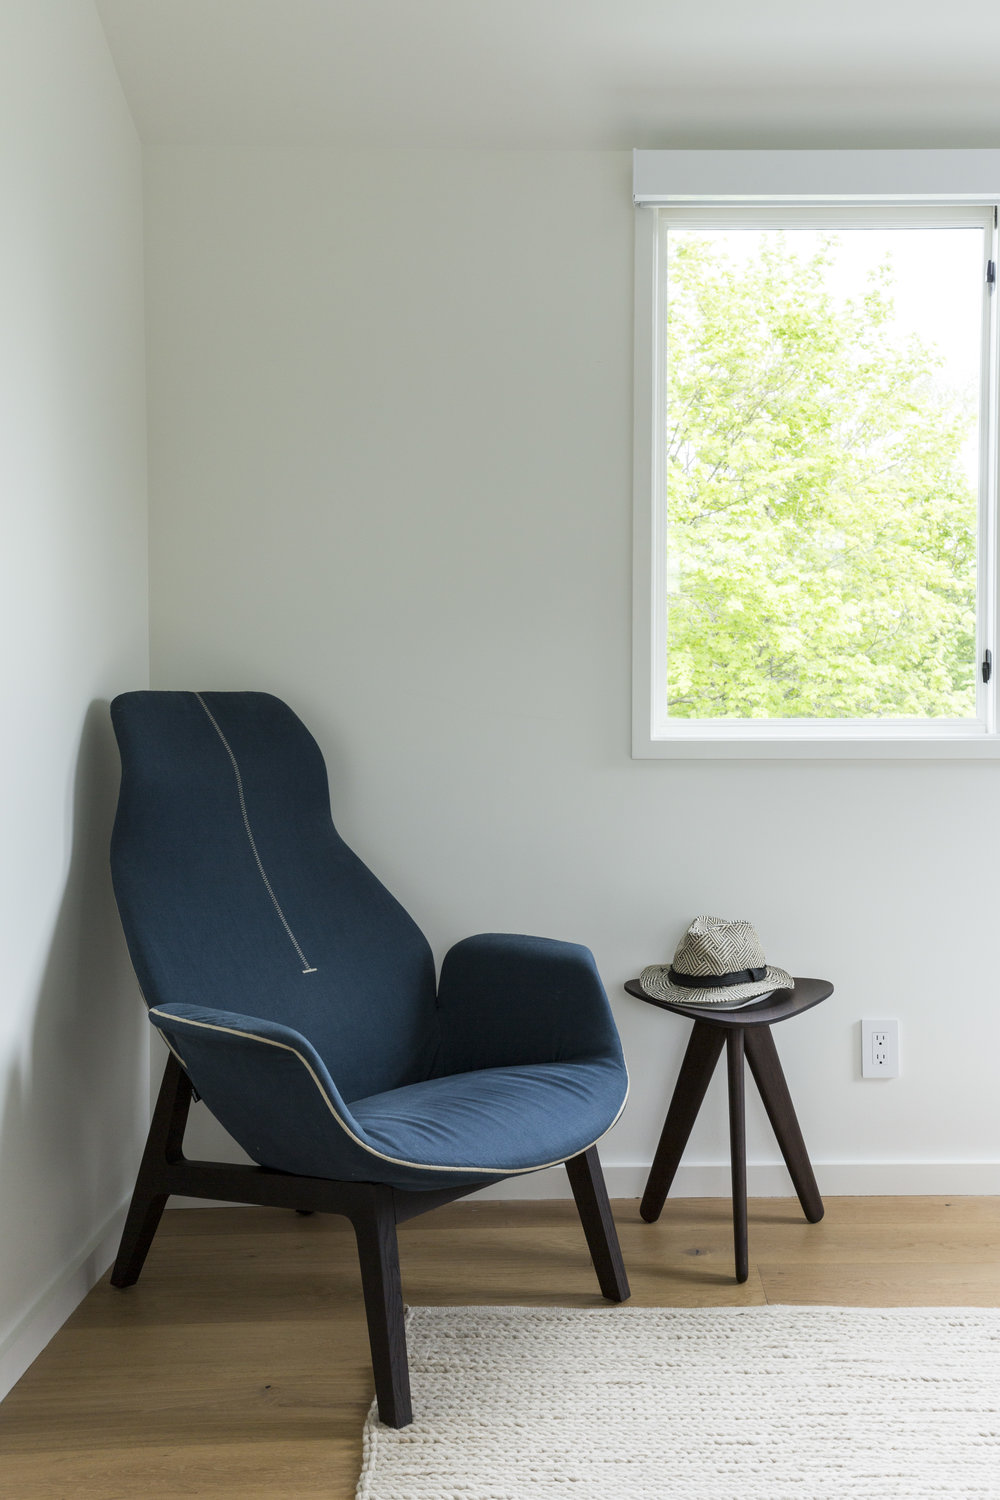 We love the deep blue color that you just want to dive into after a long day. and the enveloping design gives off an approachable modern vibe. The  Ventura Lounge  chair is one of our personal favorites!